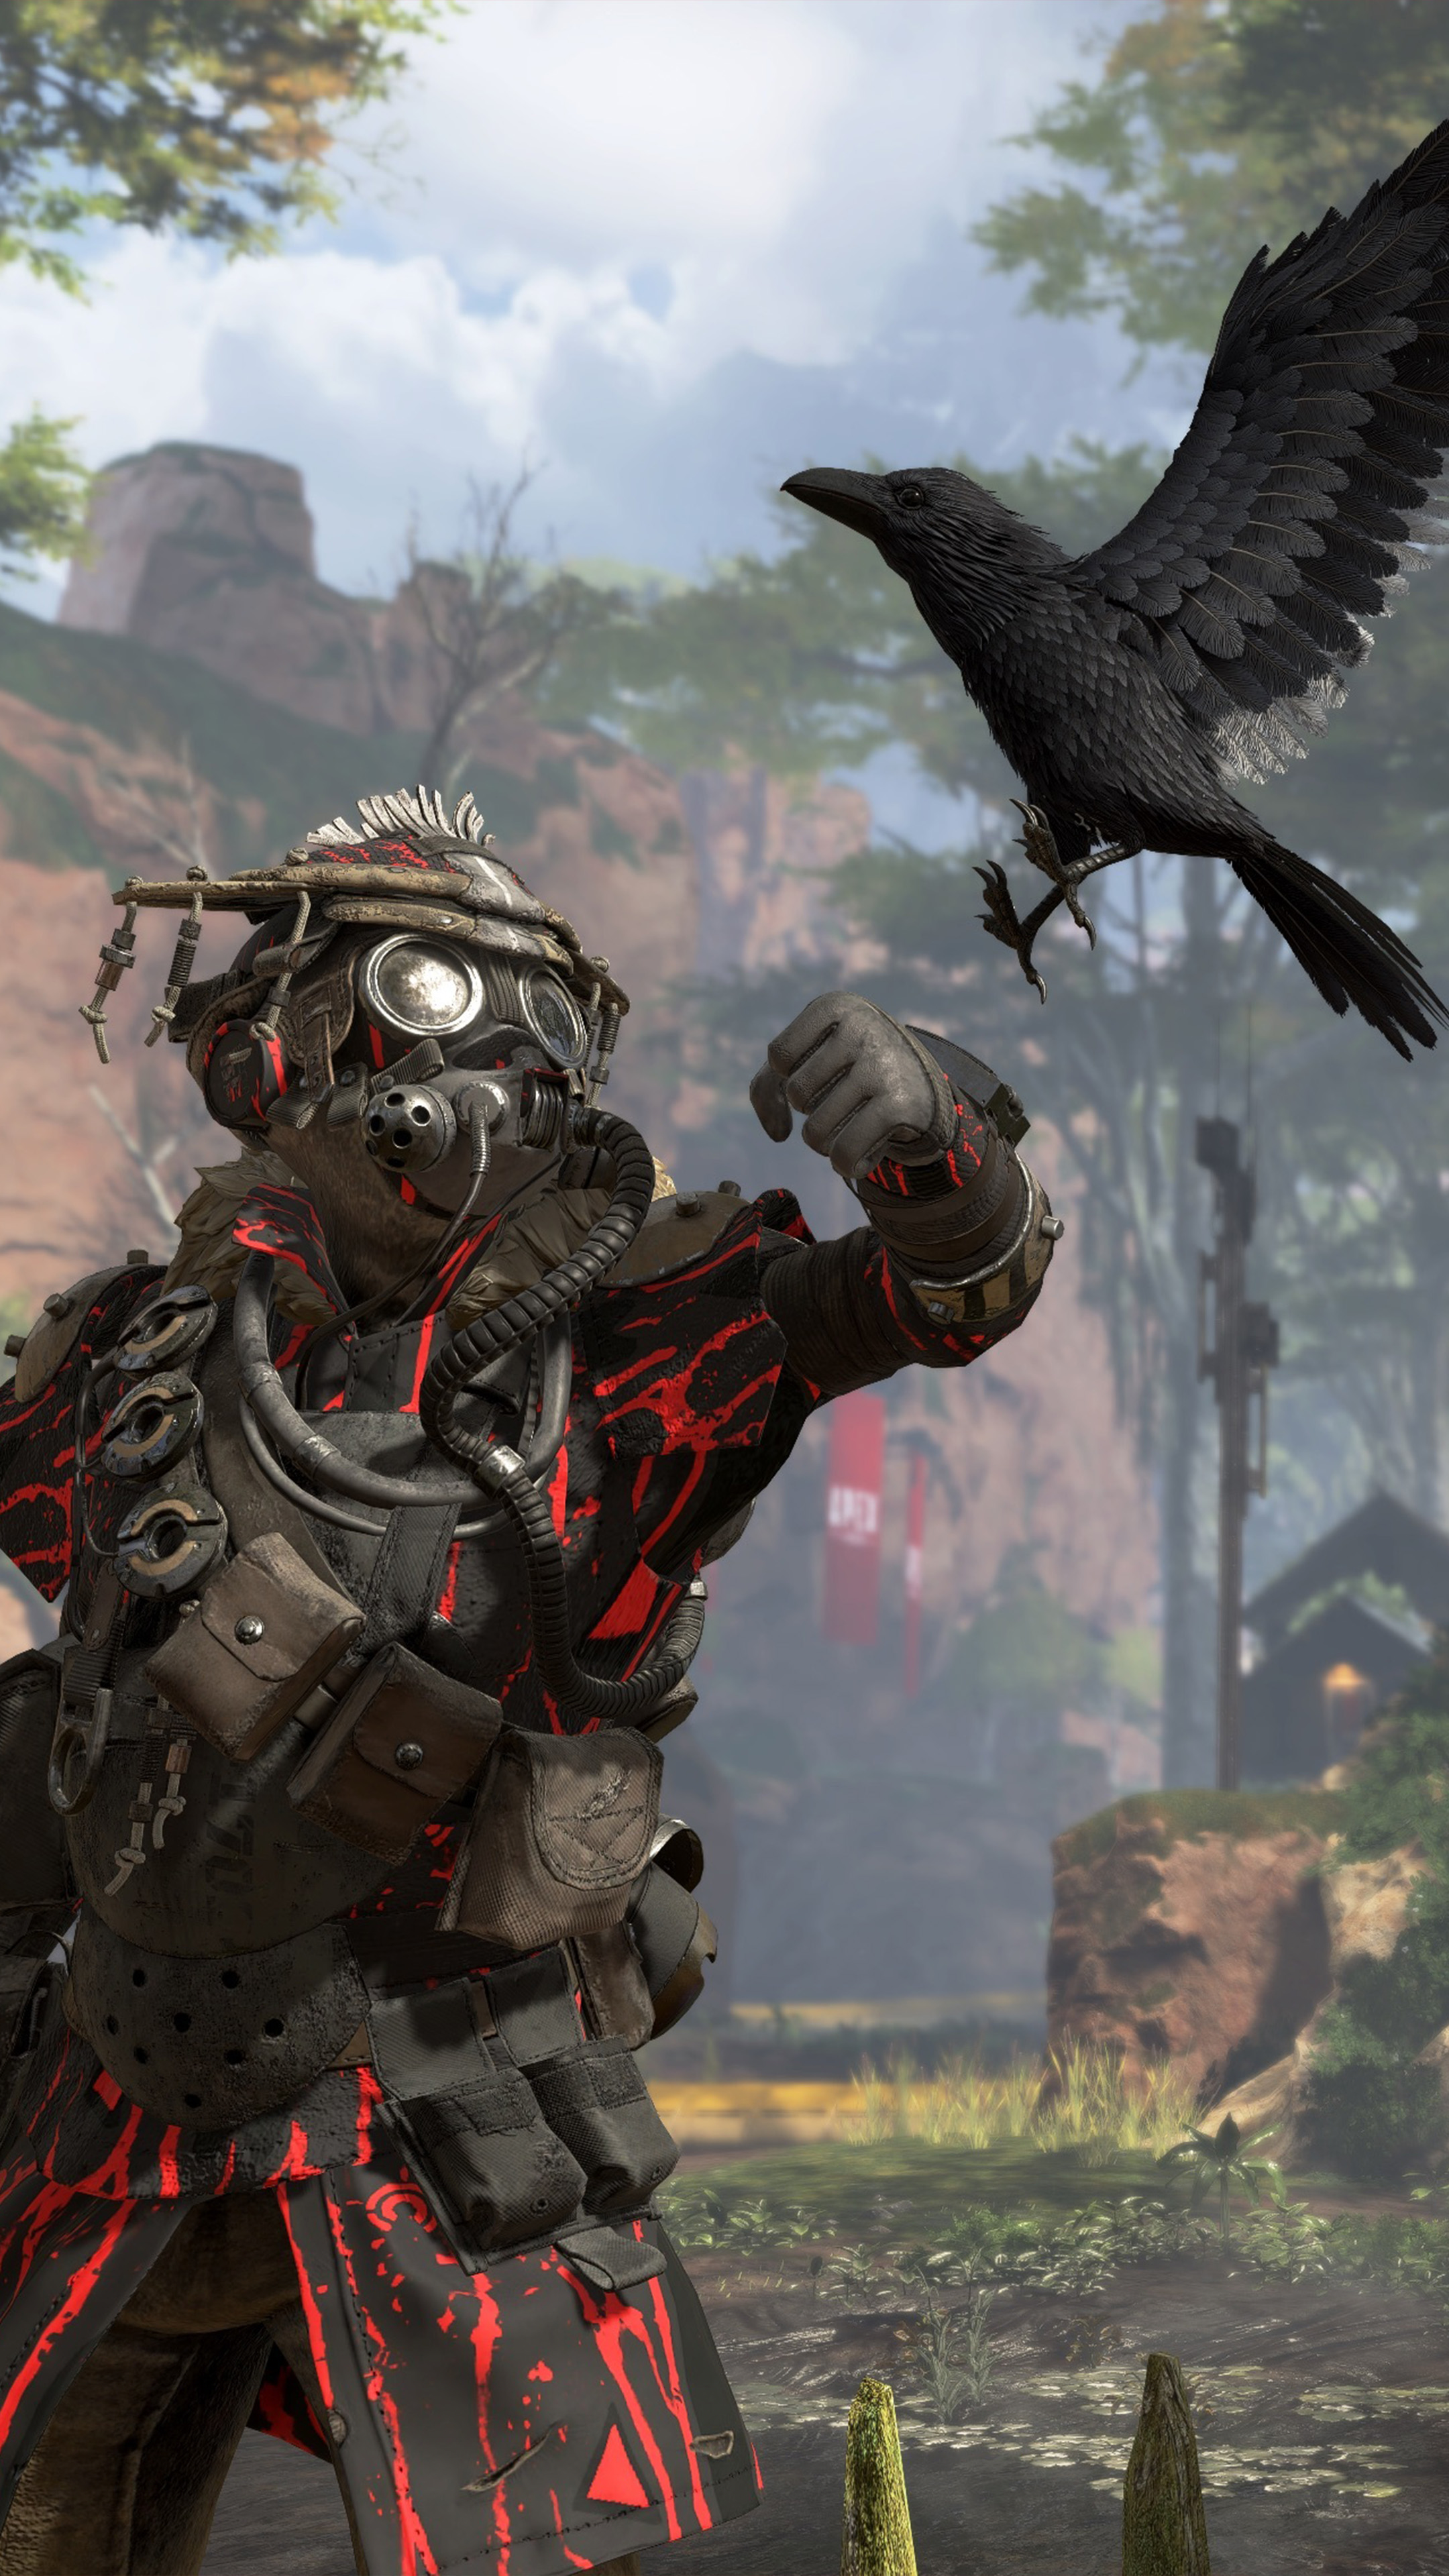 Bloodhound Apex Legends Gameplay Free 4k Ultra Hd Mobile Wallpaper